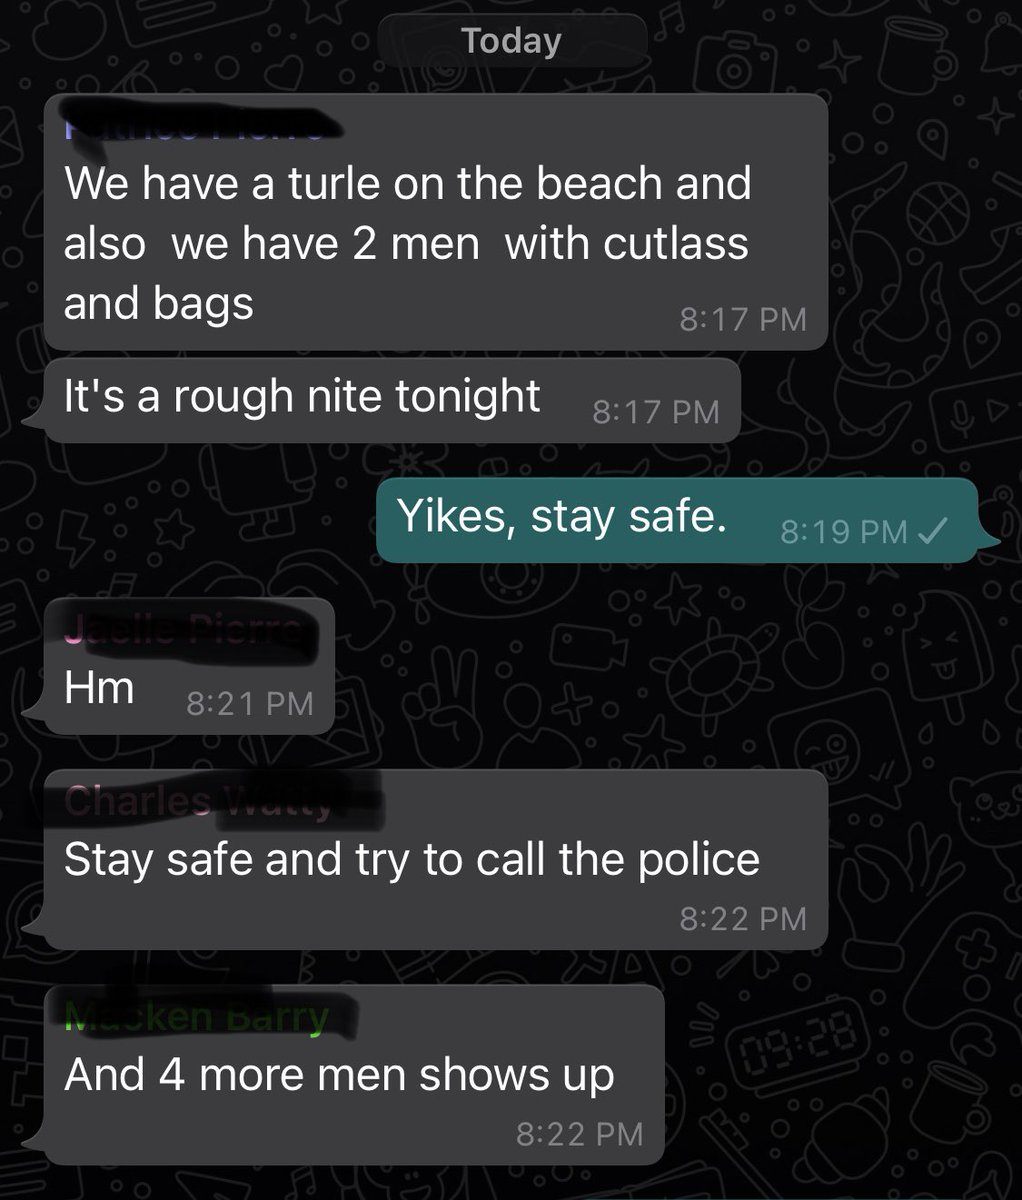 Just a few Leatherbacks left in Dominica, never a good sign when people show up with machetes and bags at night, when a turtle is trying to nest. https://t.co/7xcgn0LAdl